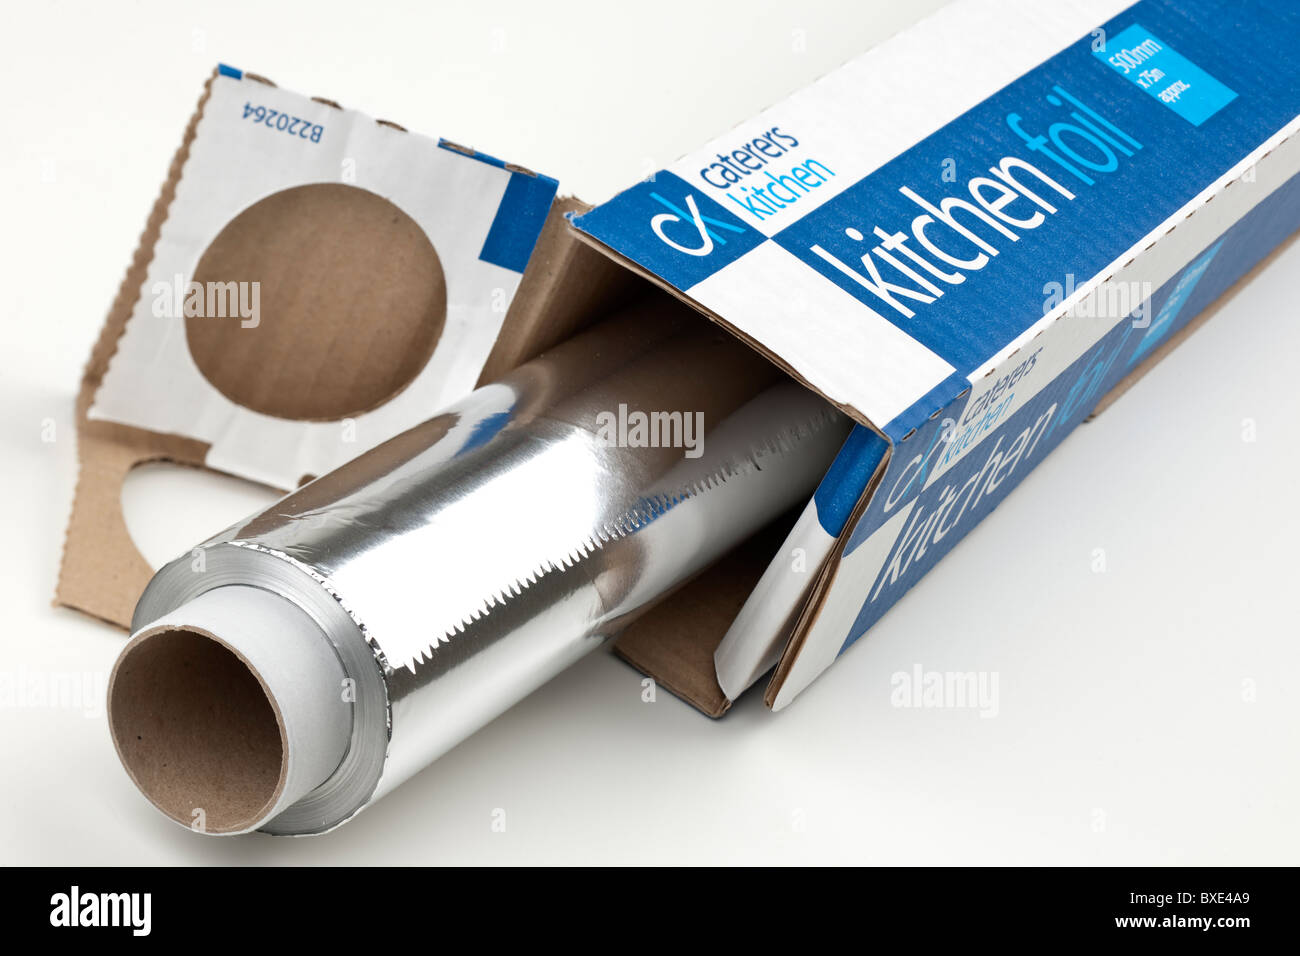 Caterers aluminum kitchen foil 500mm wide by 75 metres in length - Stock Image